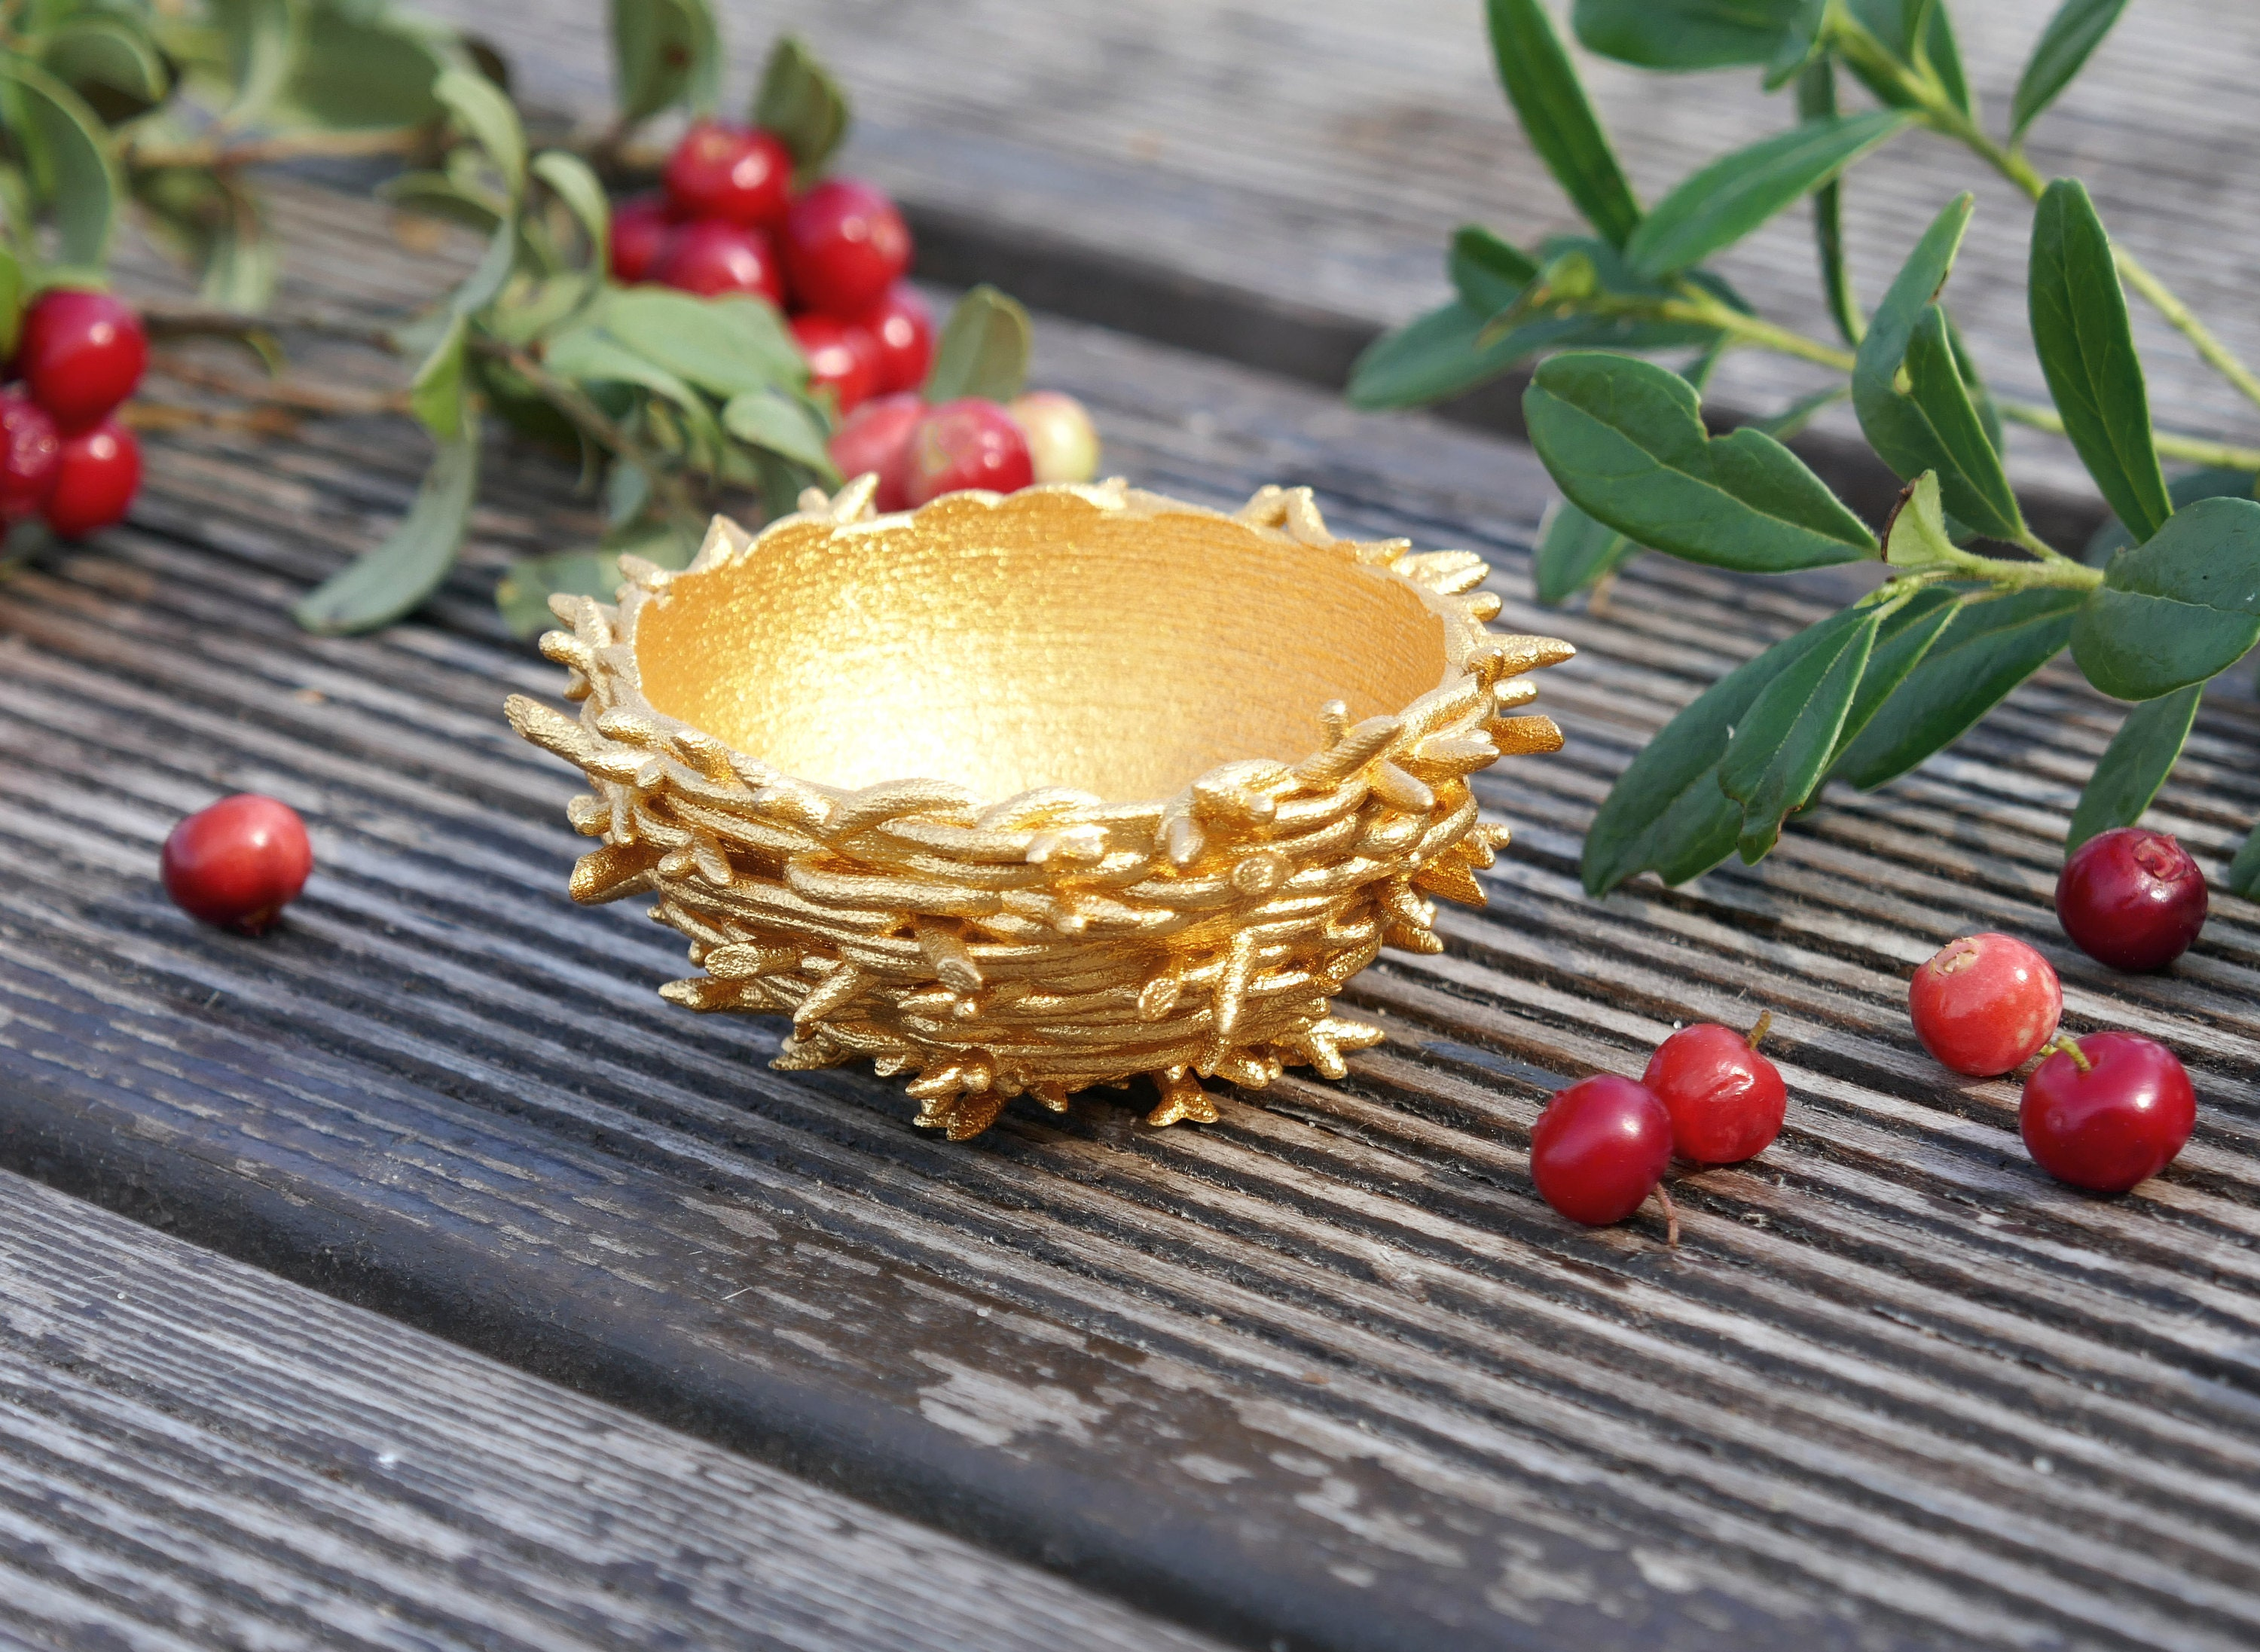 Gold Nest - 3D printed in stainless steel and gold plated